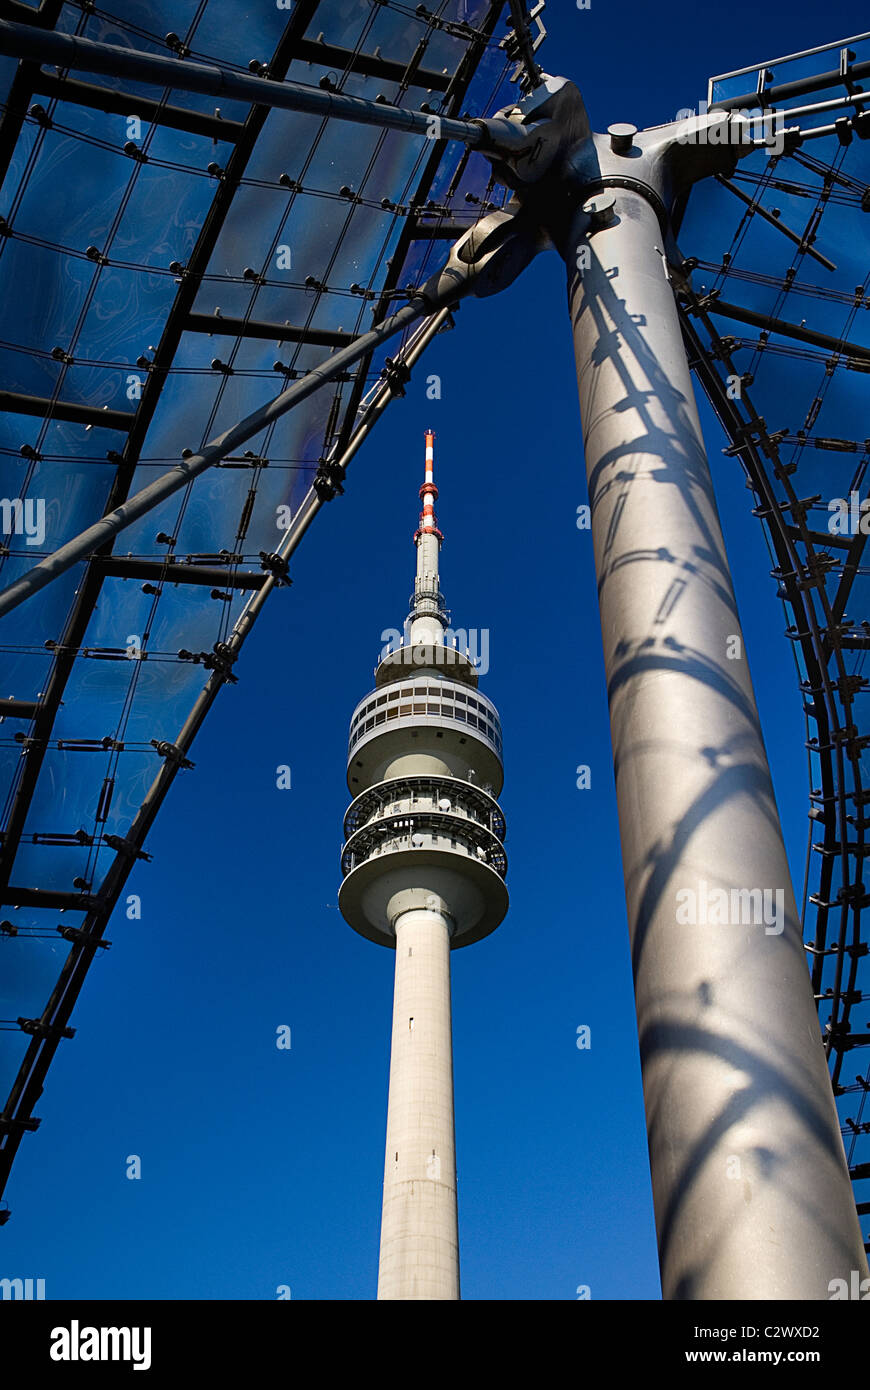 Germany Bavaria Munich 1972 Olympic Stadium section of acrylic glass canopy roof and Olympic Tower. Stock Photo